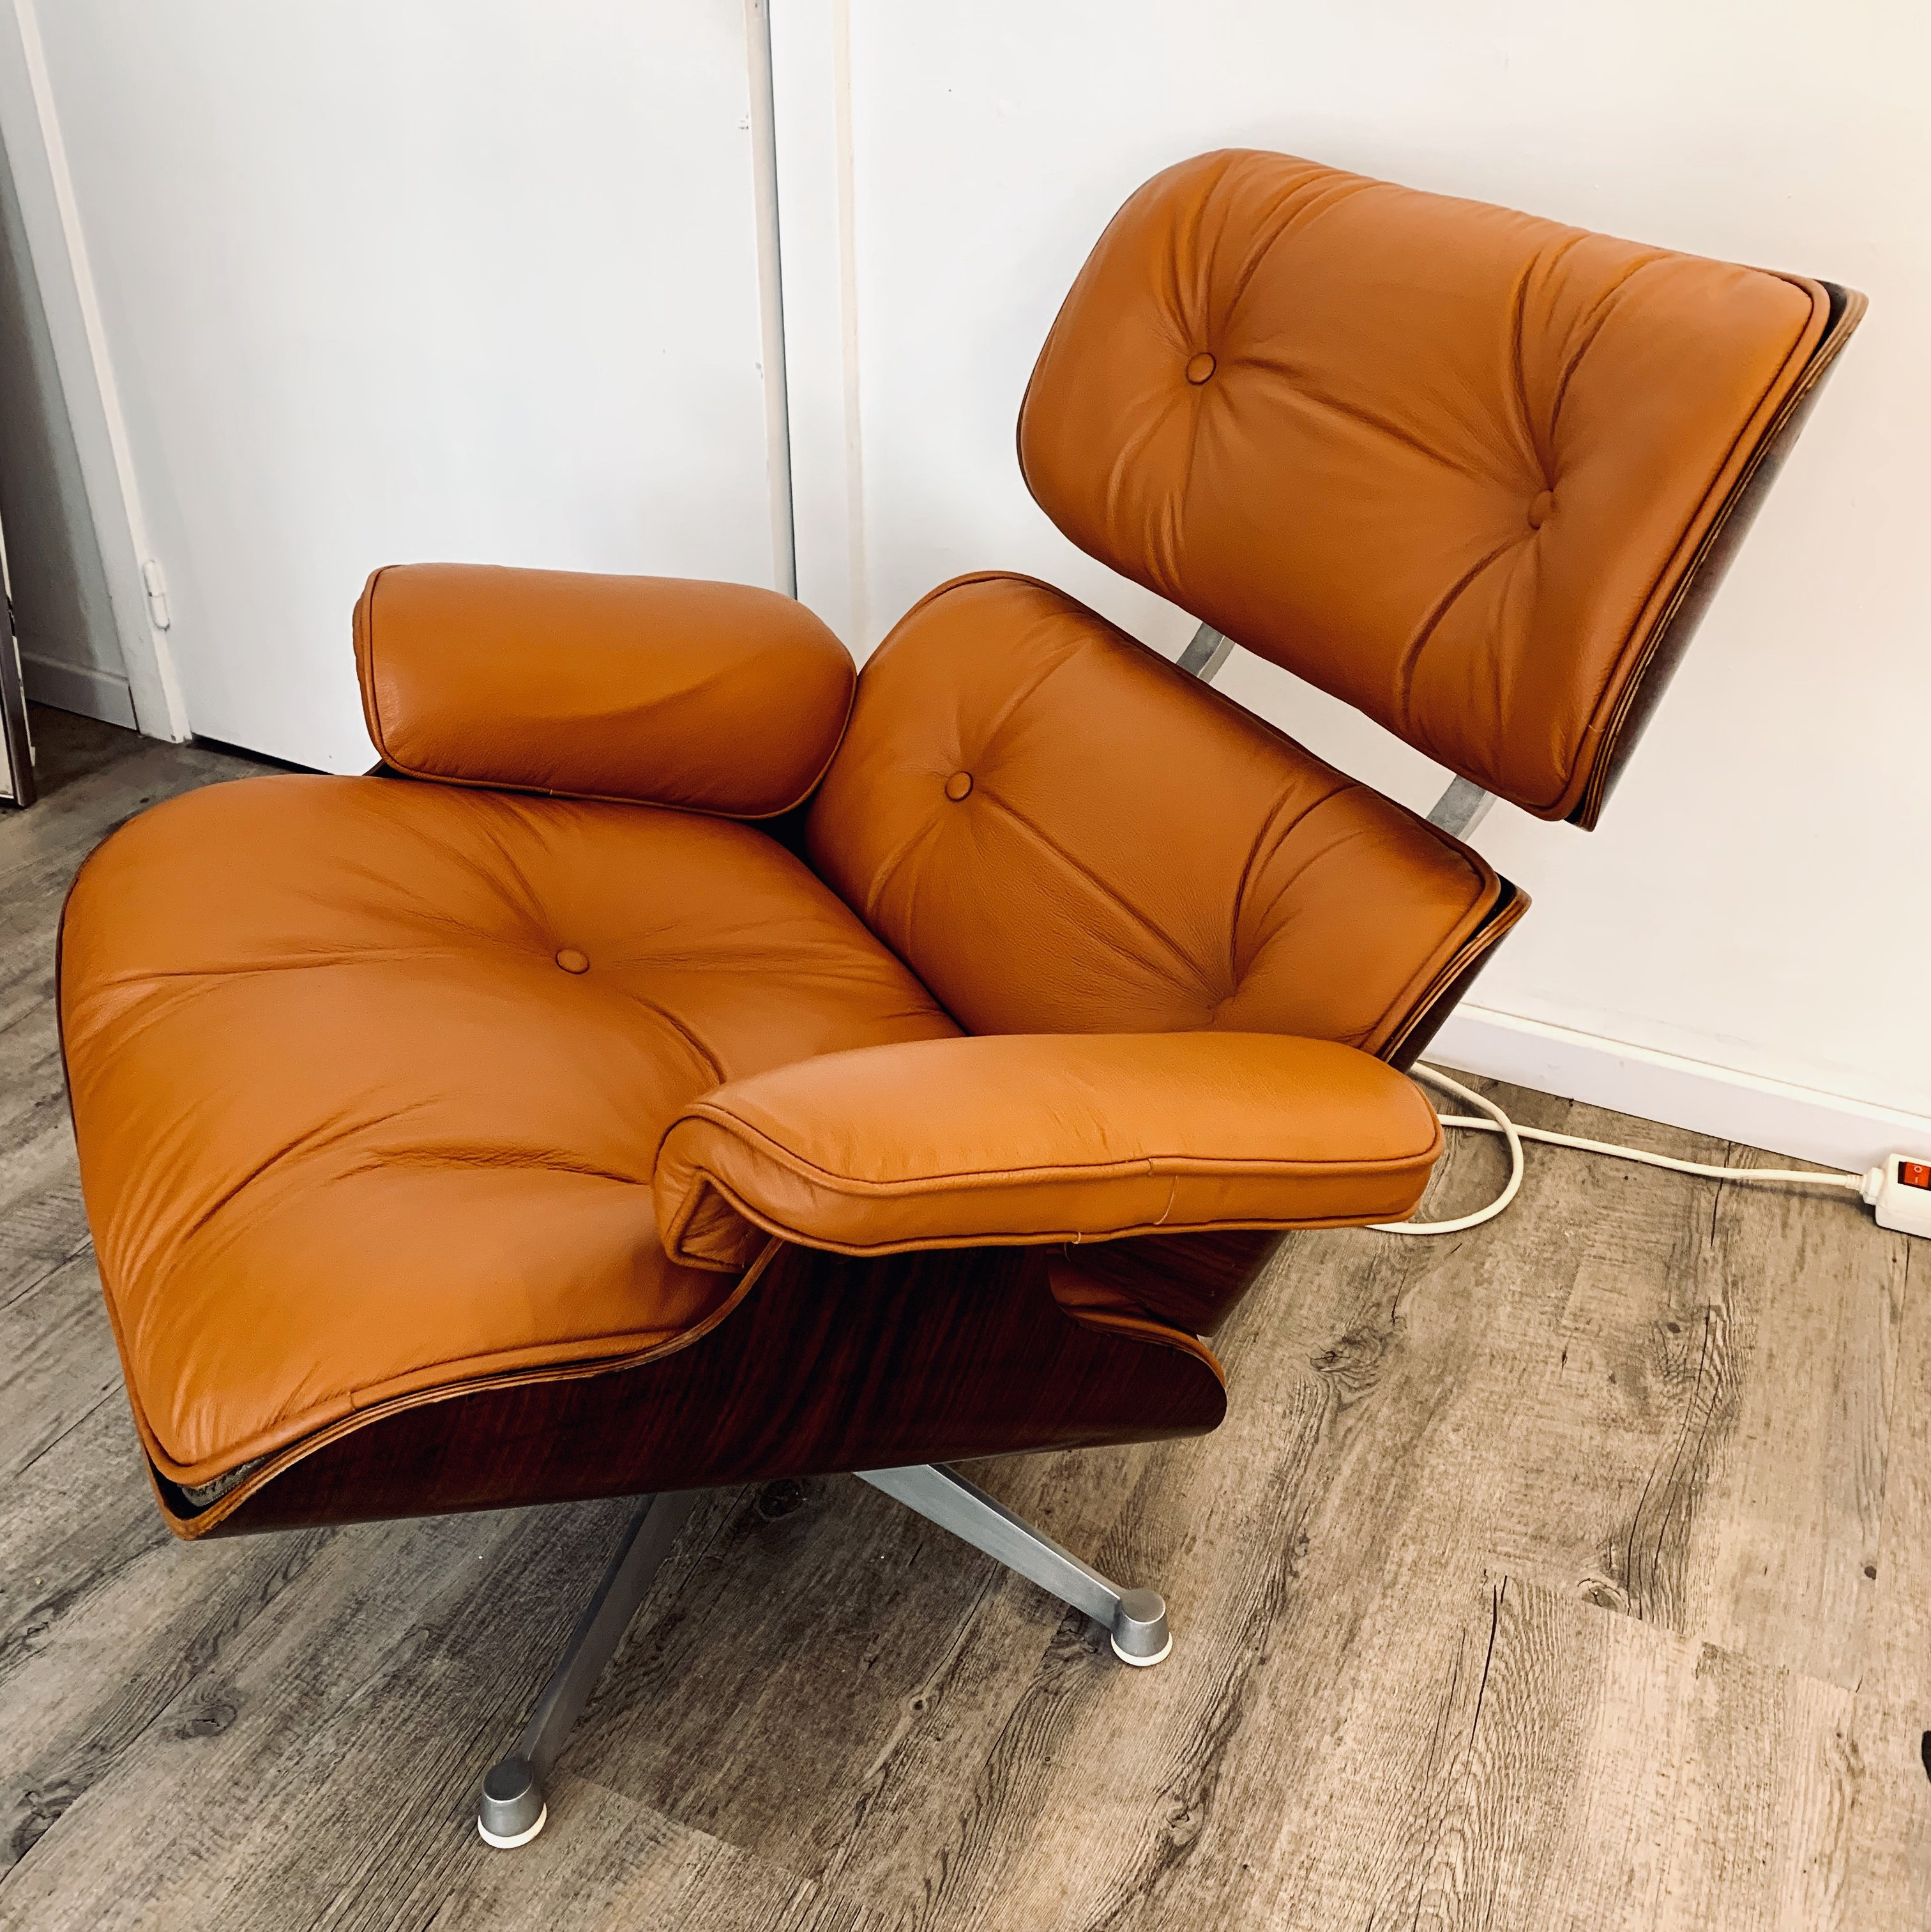 Eames Lounge Chair.1st Edition Eames Lounge Chair By Charles Ray Eames For Icf Italy 1957